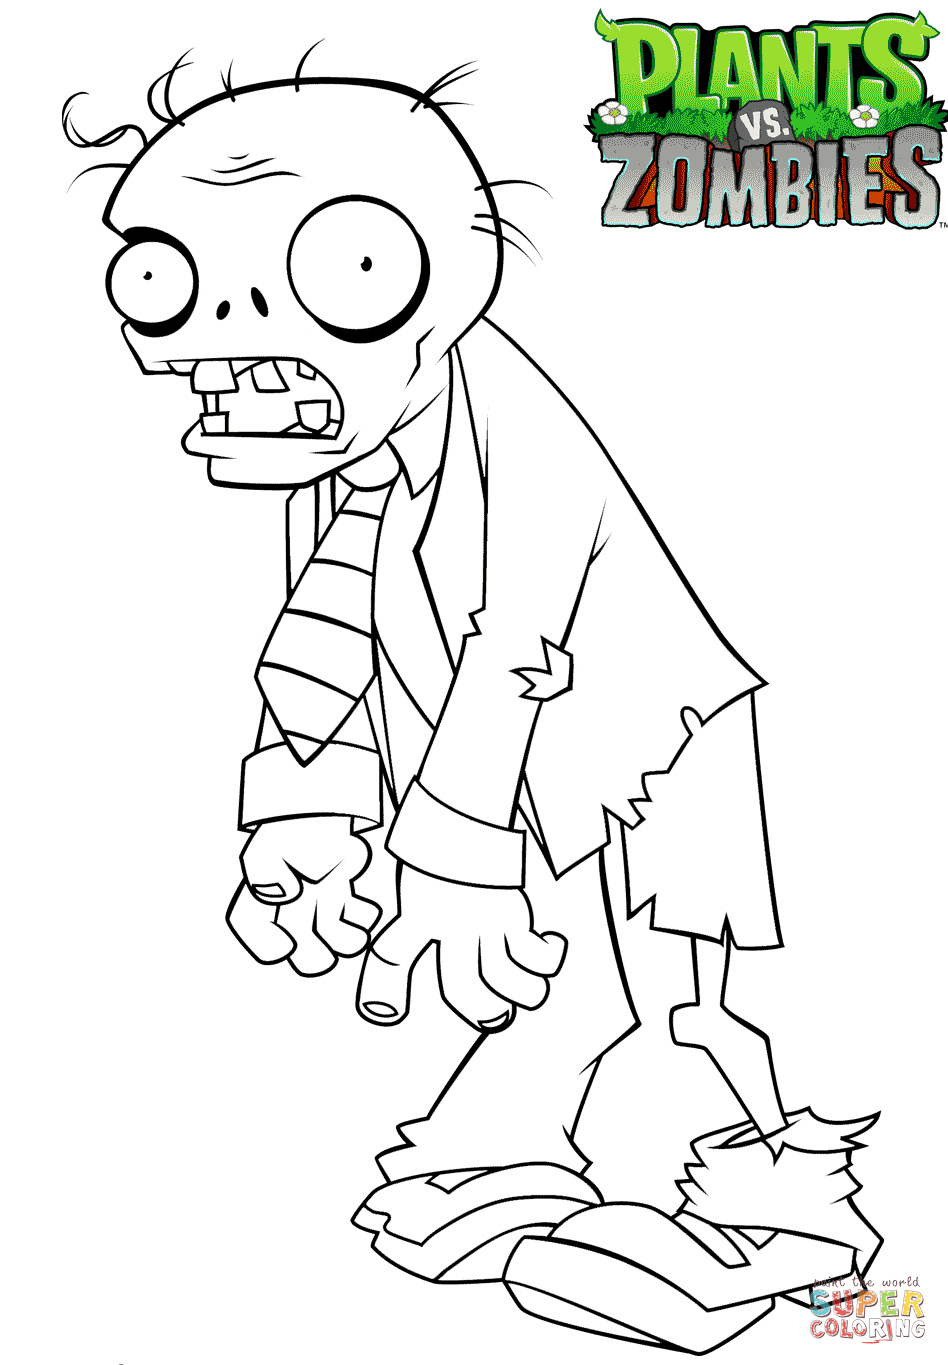 Plants Vs Zombies Coloring Page Free Printable Coloring Pages Coloring Pages Coloring Books Halloween Coloring Pages